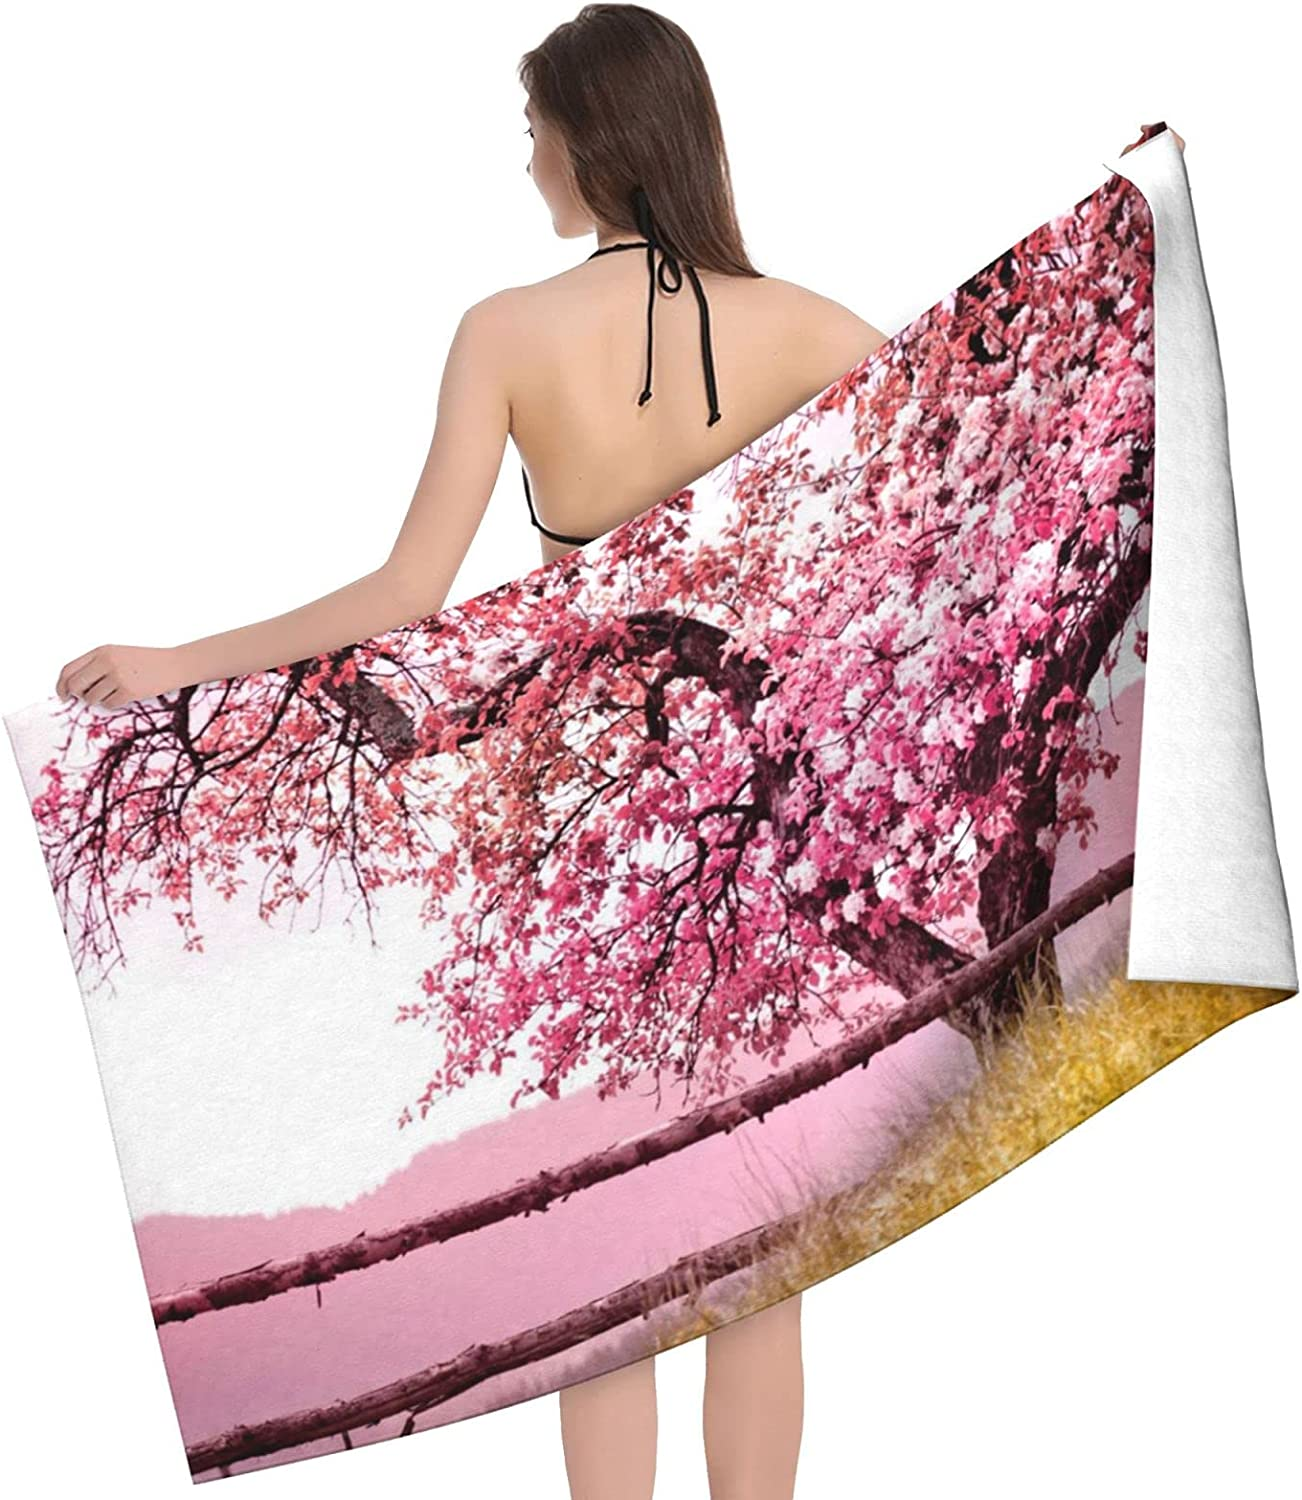 Plum Tree Blossom Print Adult Double Popular Towel Towels - Beach SEAL limited product